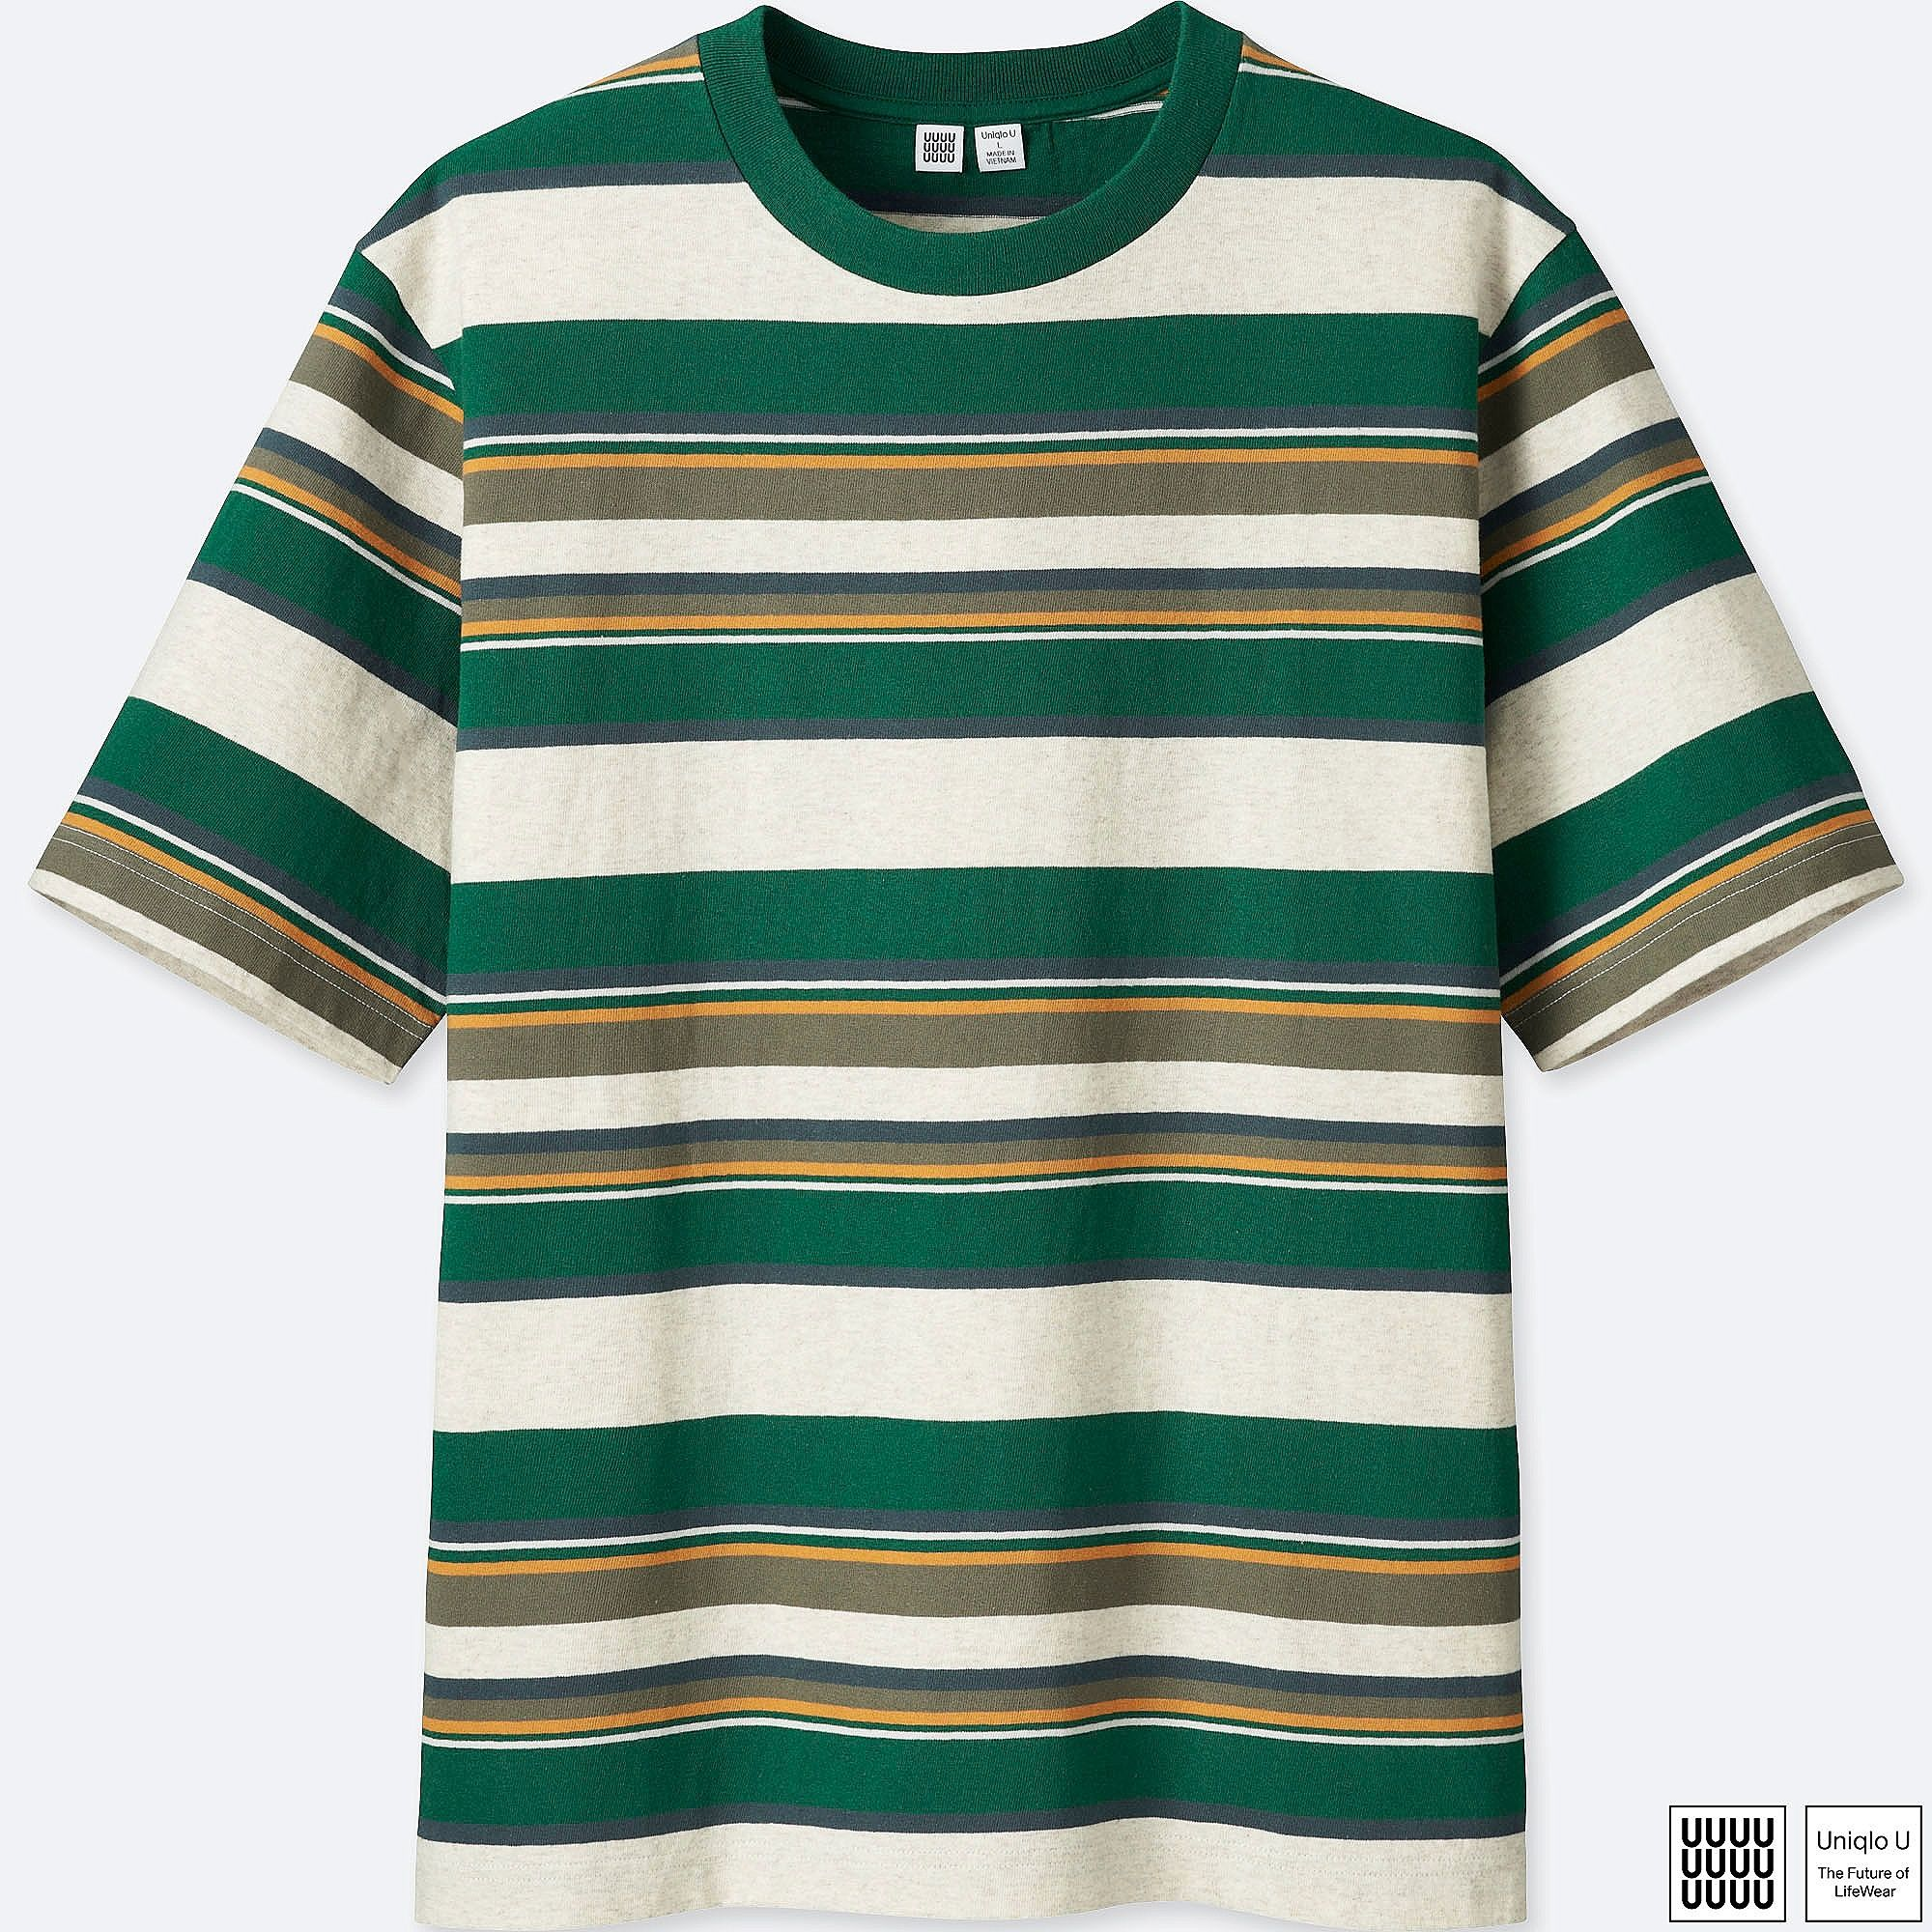 6402feec11 MEN UNIQLO U 100% COTTON Striped Short Sleeve T-Shirt | UNIQLO UK ...